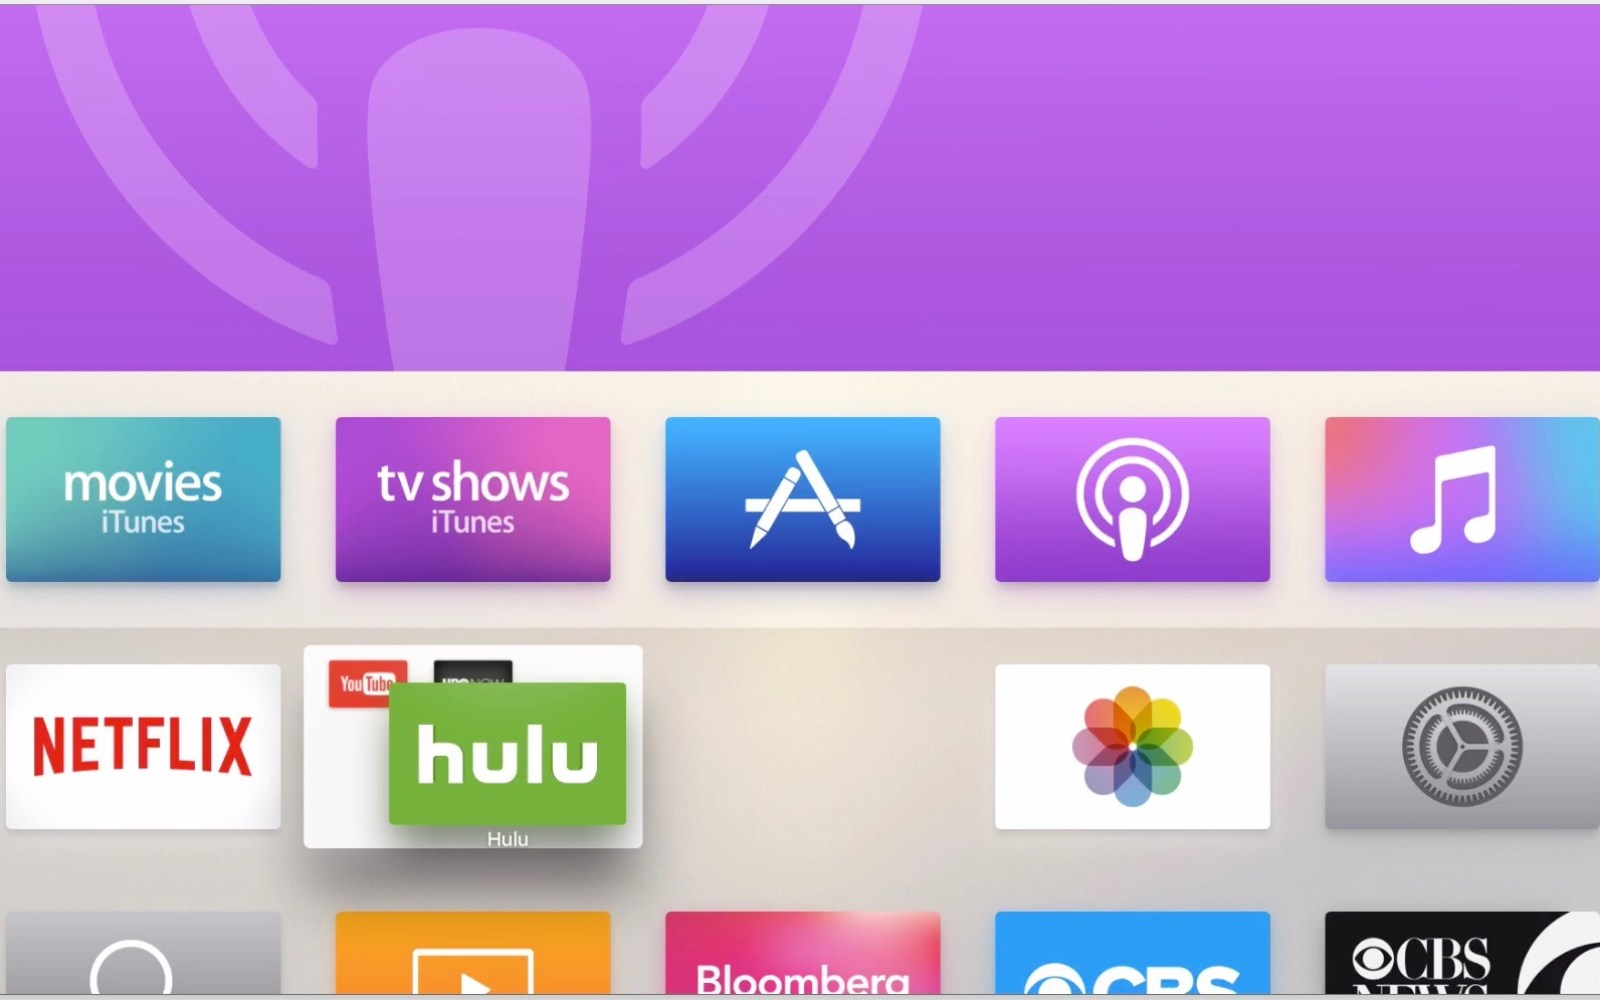 tvOS 9.2 Preview: First look at Apple TV's new Podcasts app, folders & switcher UI, Bluetooth keyboard support, more [Video]